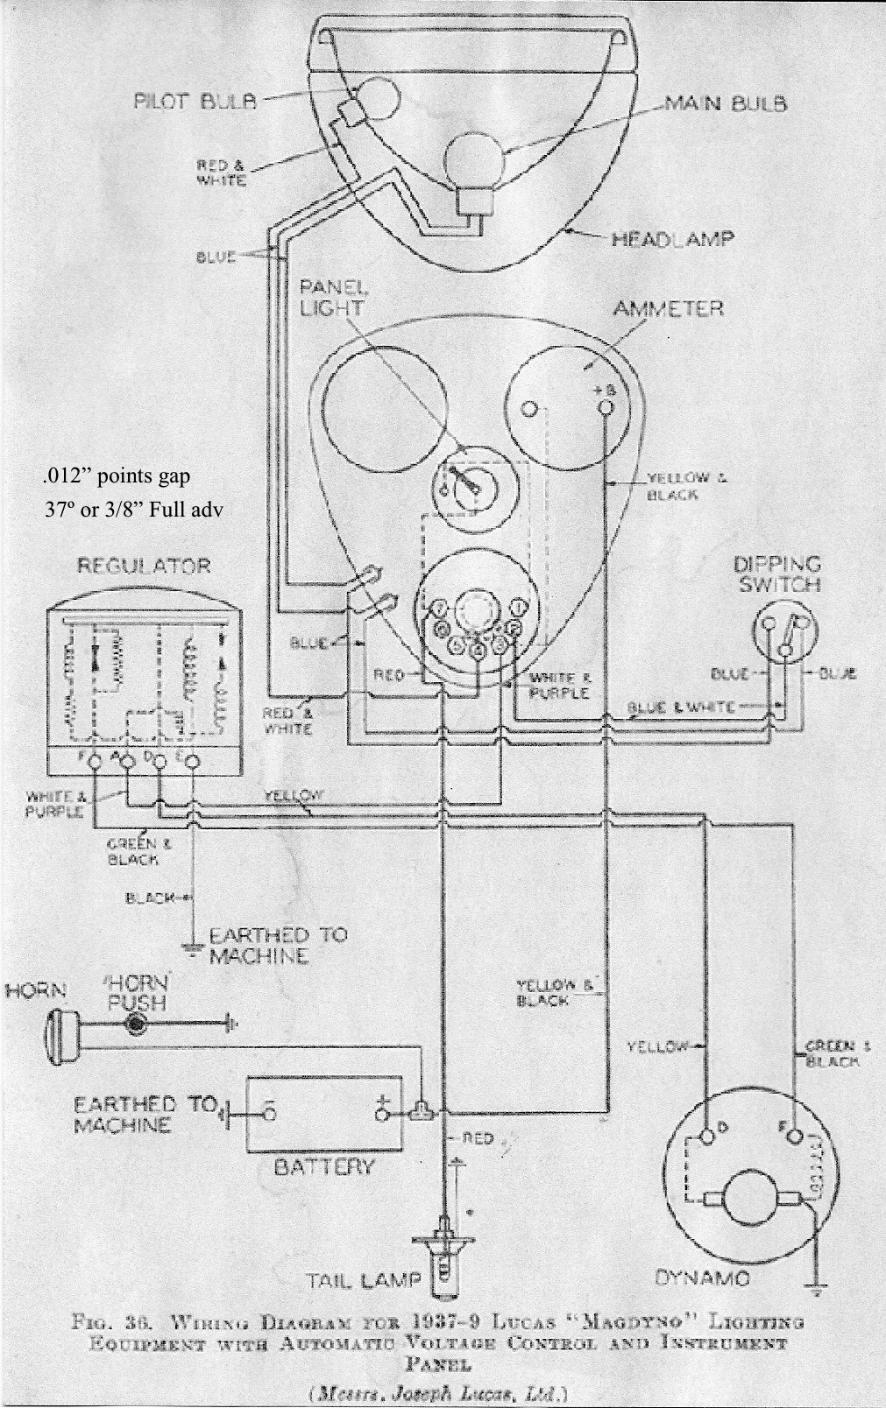 medium resolution of triumph cub wiring diagram wiring diagram ame1960 triumph wiring diagram wiring diagram name triumph cub wiring